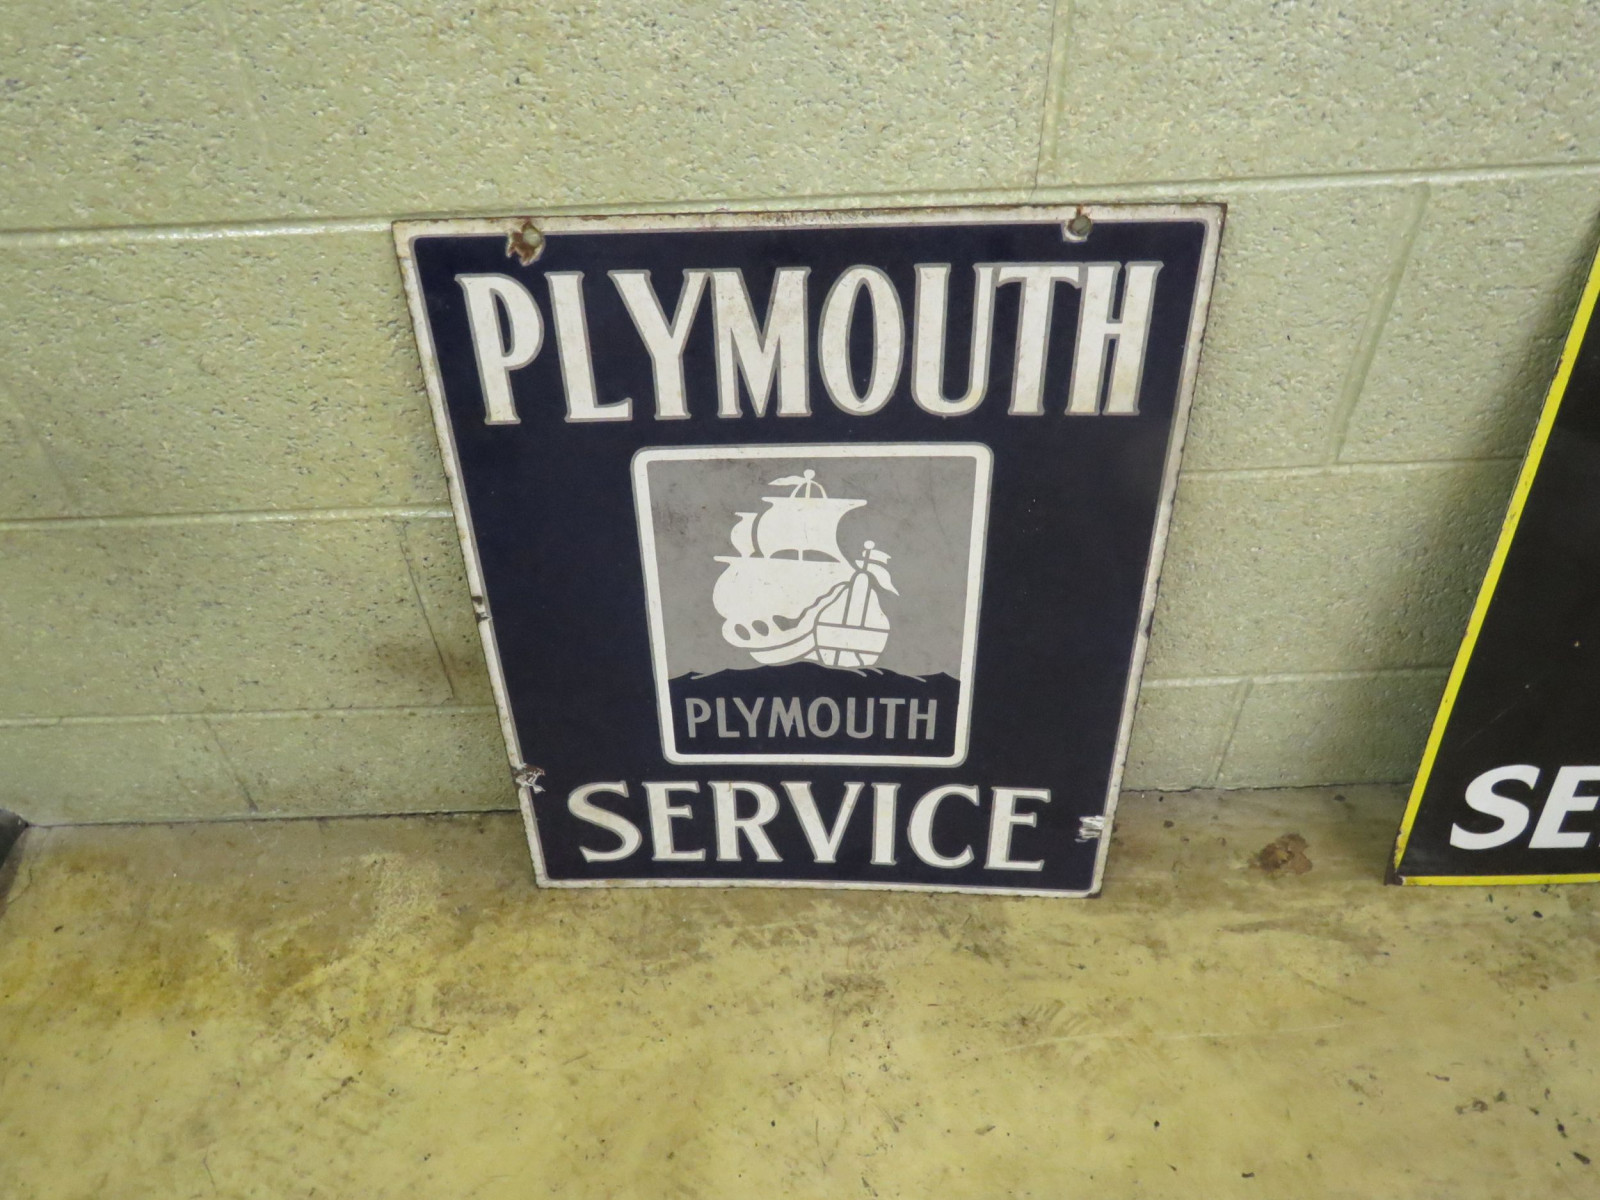 Plymouth Service Porcelain Sign - Image 1